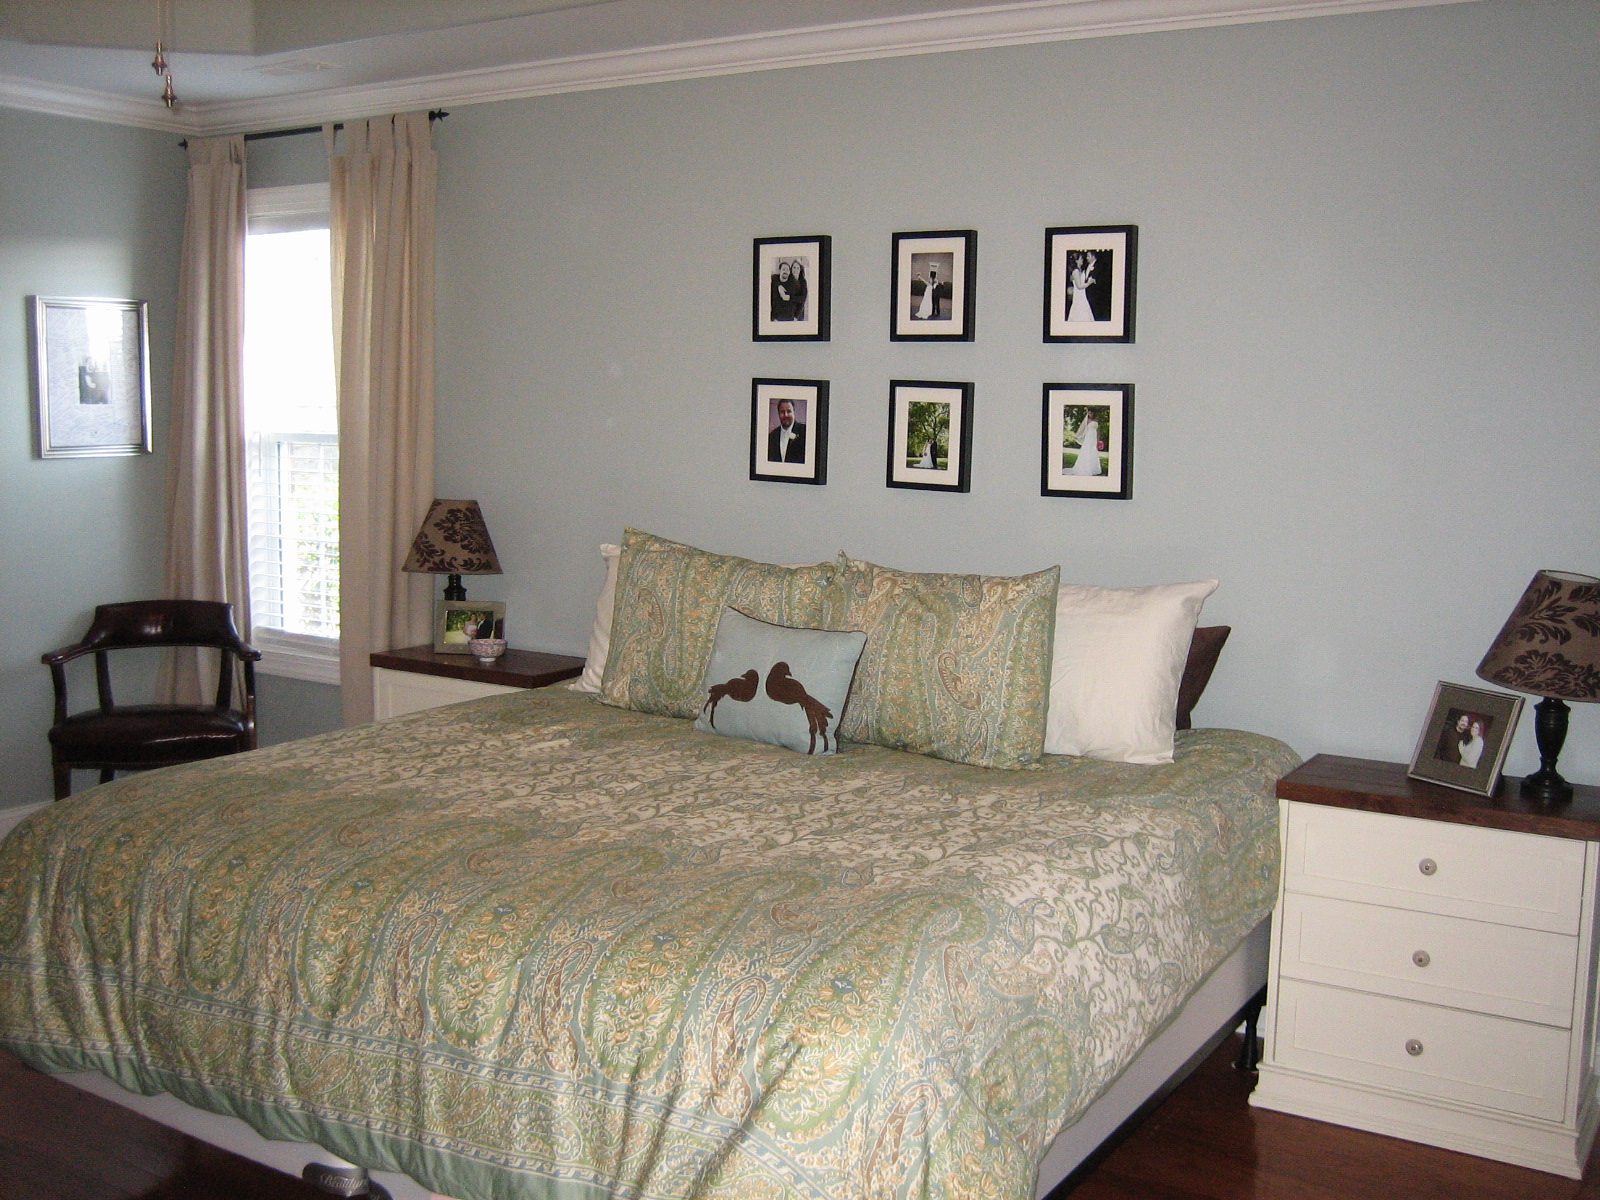 Master Bedroom Update: PB Colette Bedding And A New Bed!